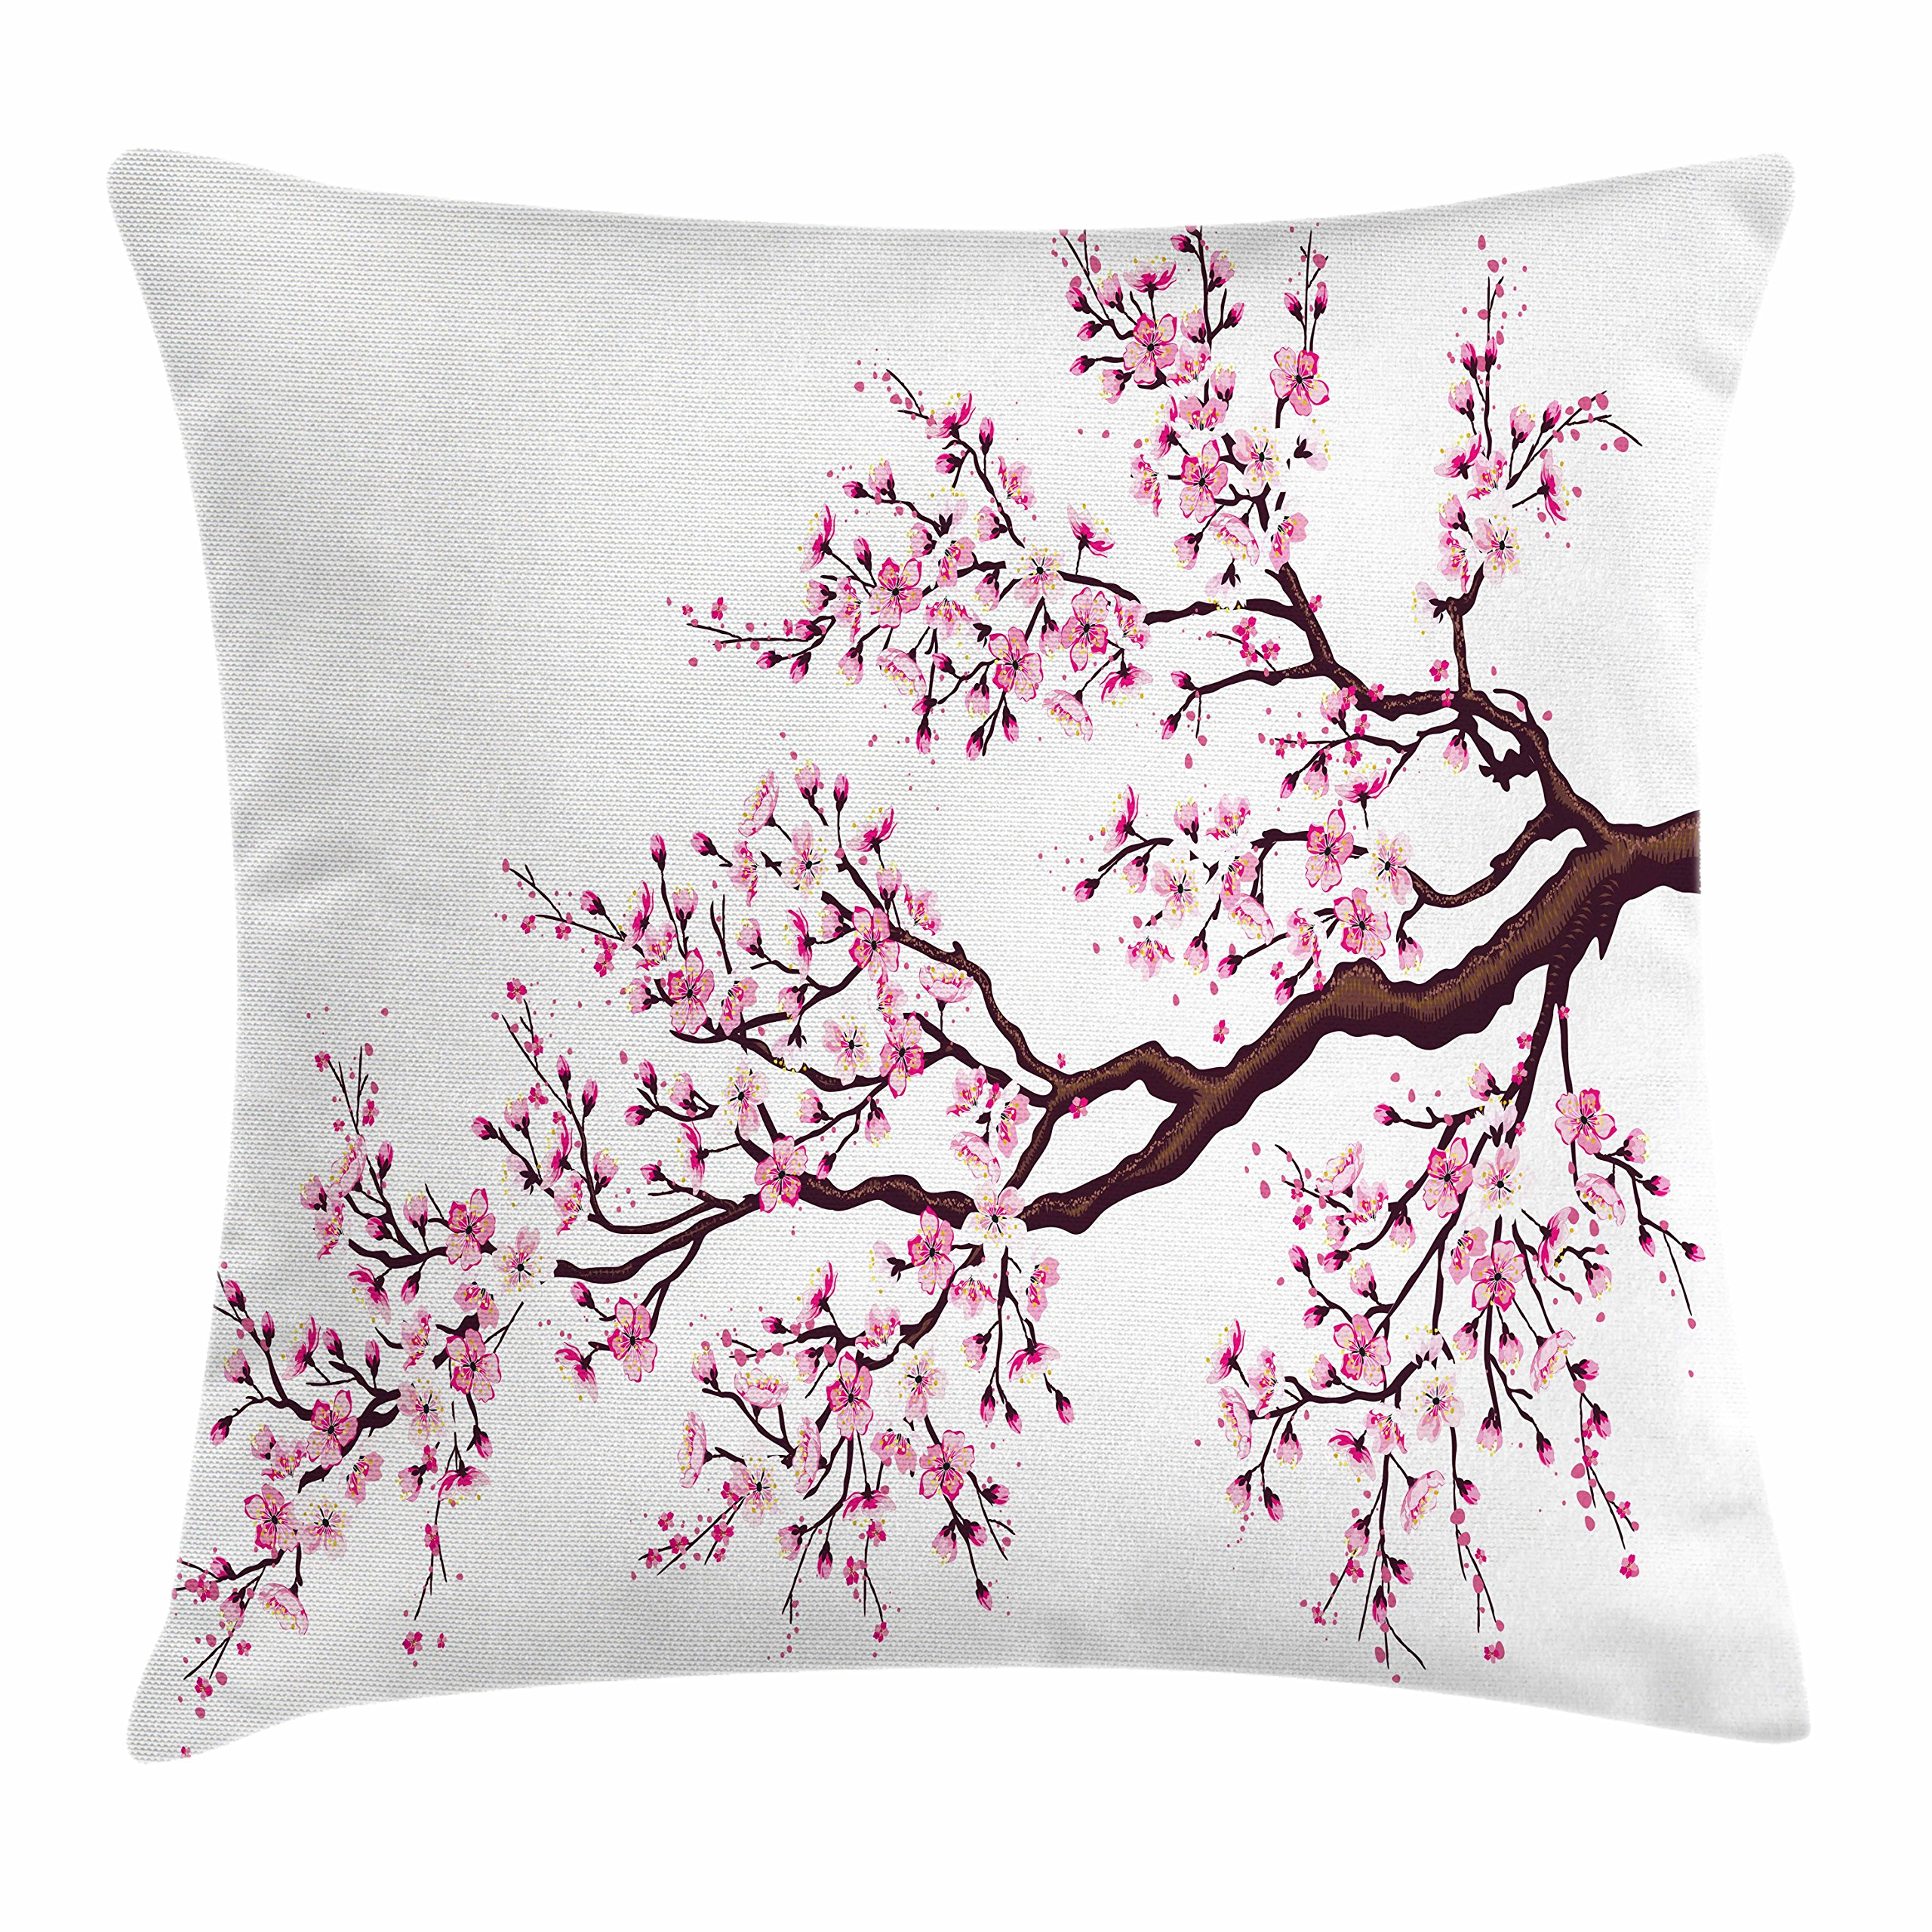 Ambesonne Japanese Throw Pillow Cushion Cover, Branch of a Flourishing Sakura Tree Flowers Cherry Blossoms Spring Theme Art, Decorative Square Accent Pillow Case, 18 X 18 Inches, Pink Dark Brown